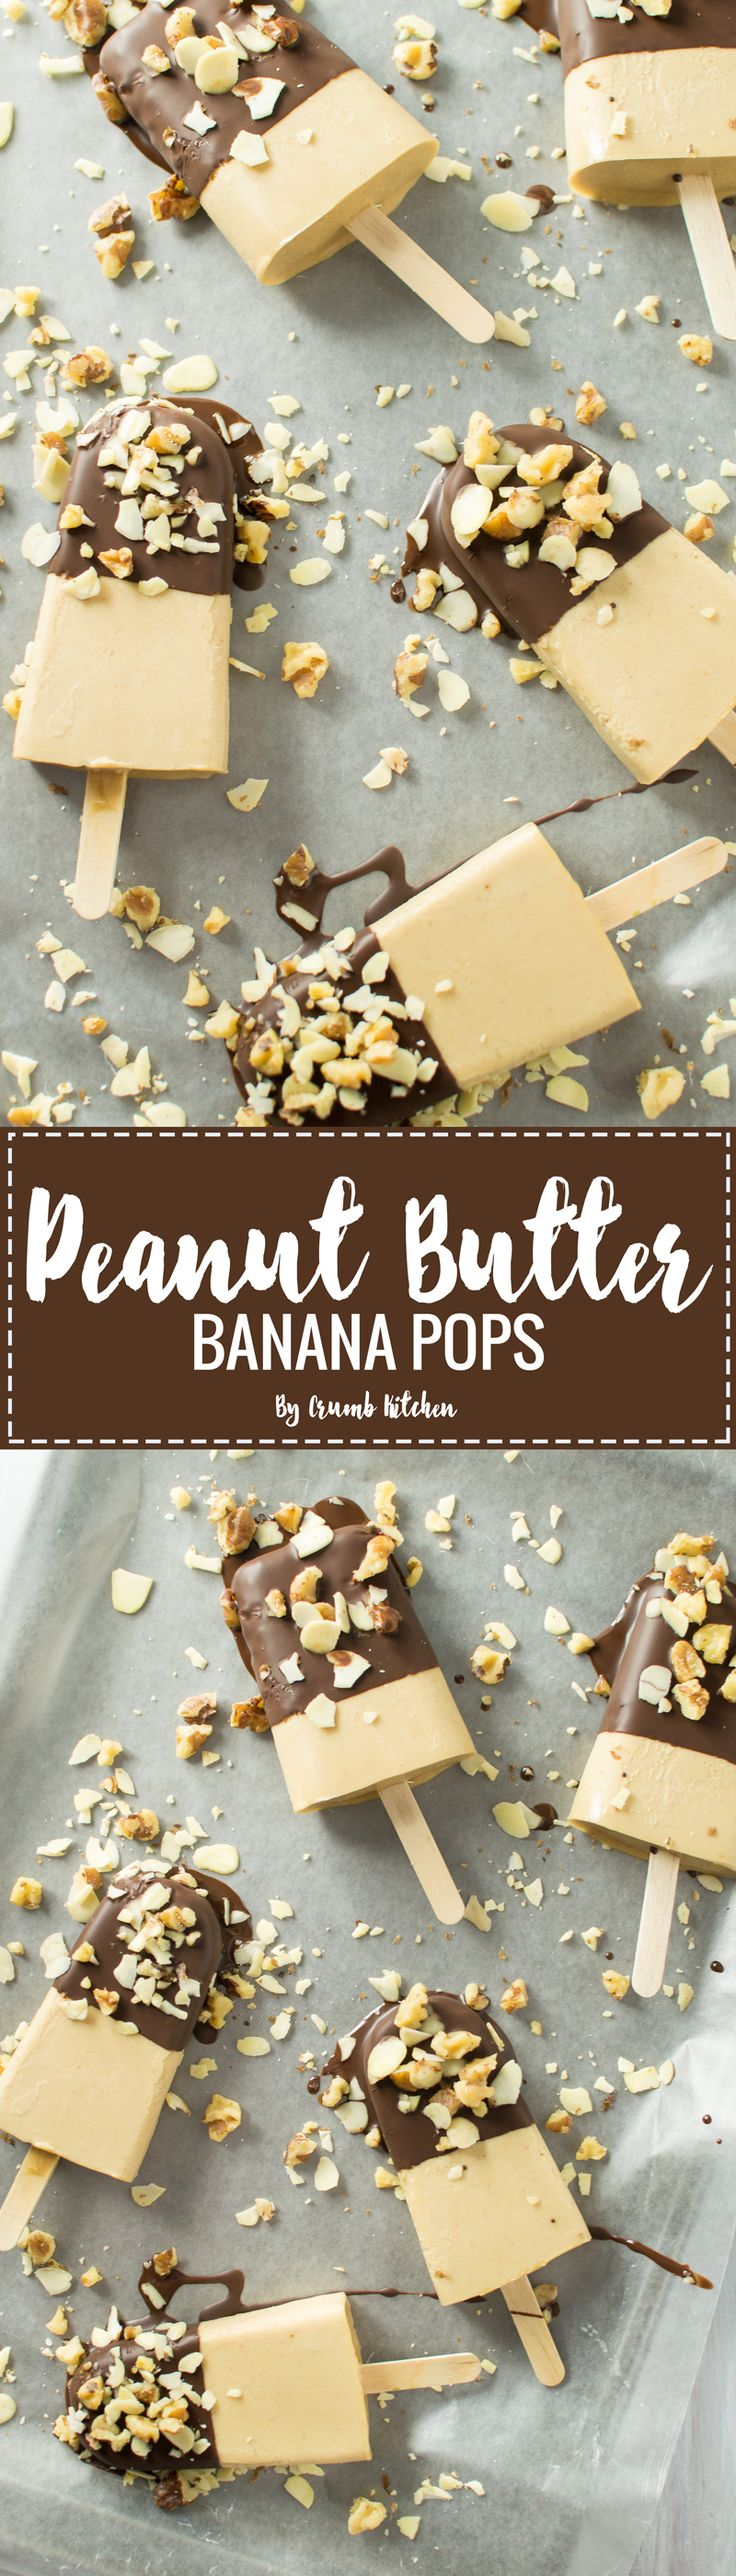 These creamy peanut butter banana pops are topped with a chocolate coconut oil magic shell and hearty crumbled nuts. | Crumb Kitchen